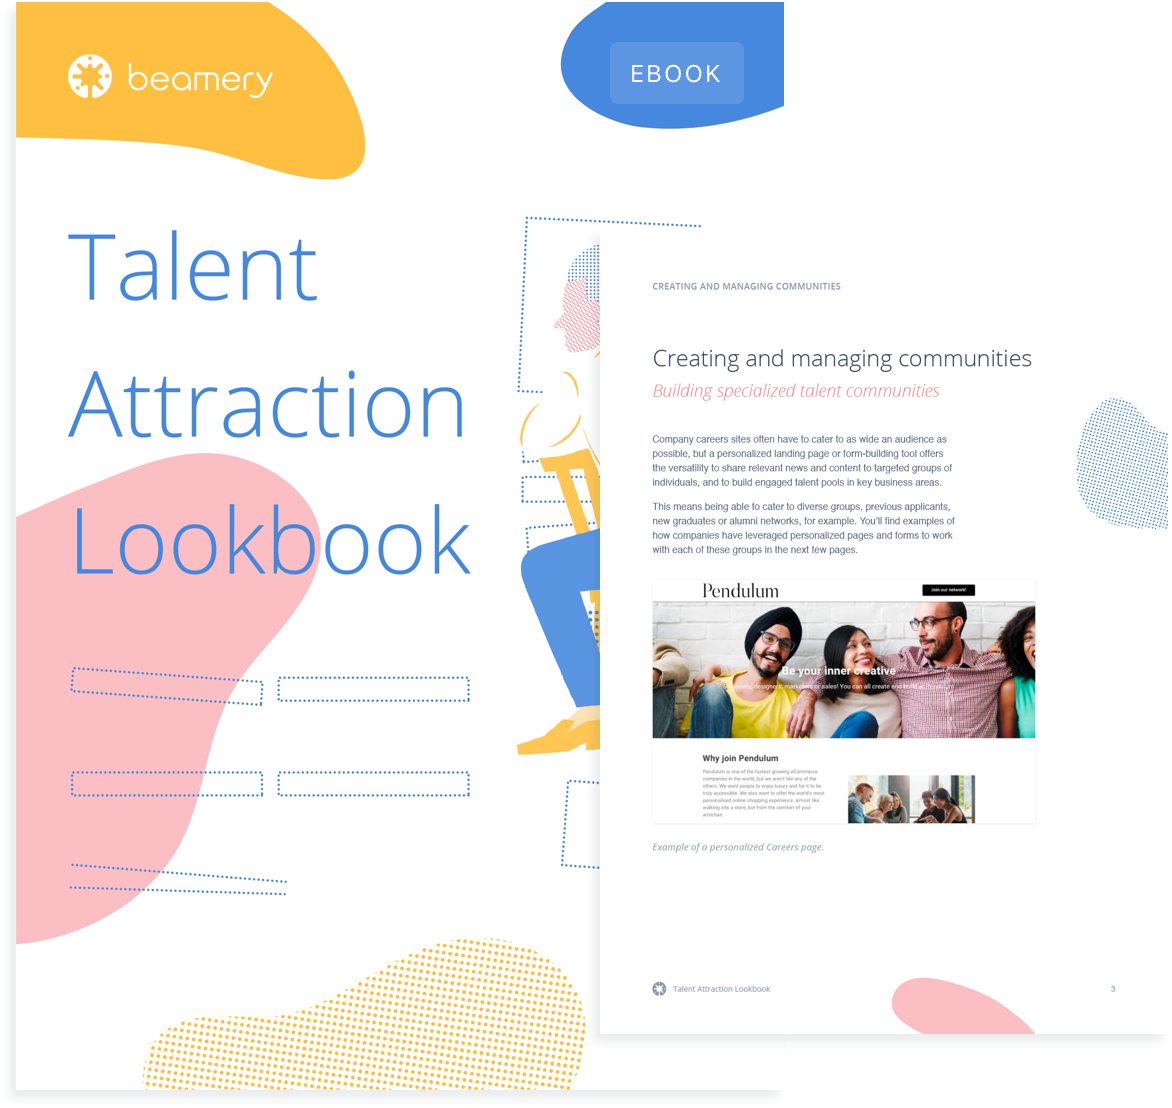 The Talent Attraction Lookbook